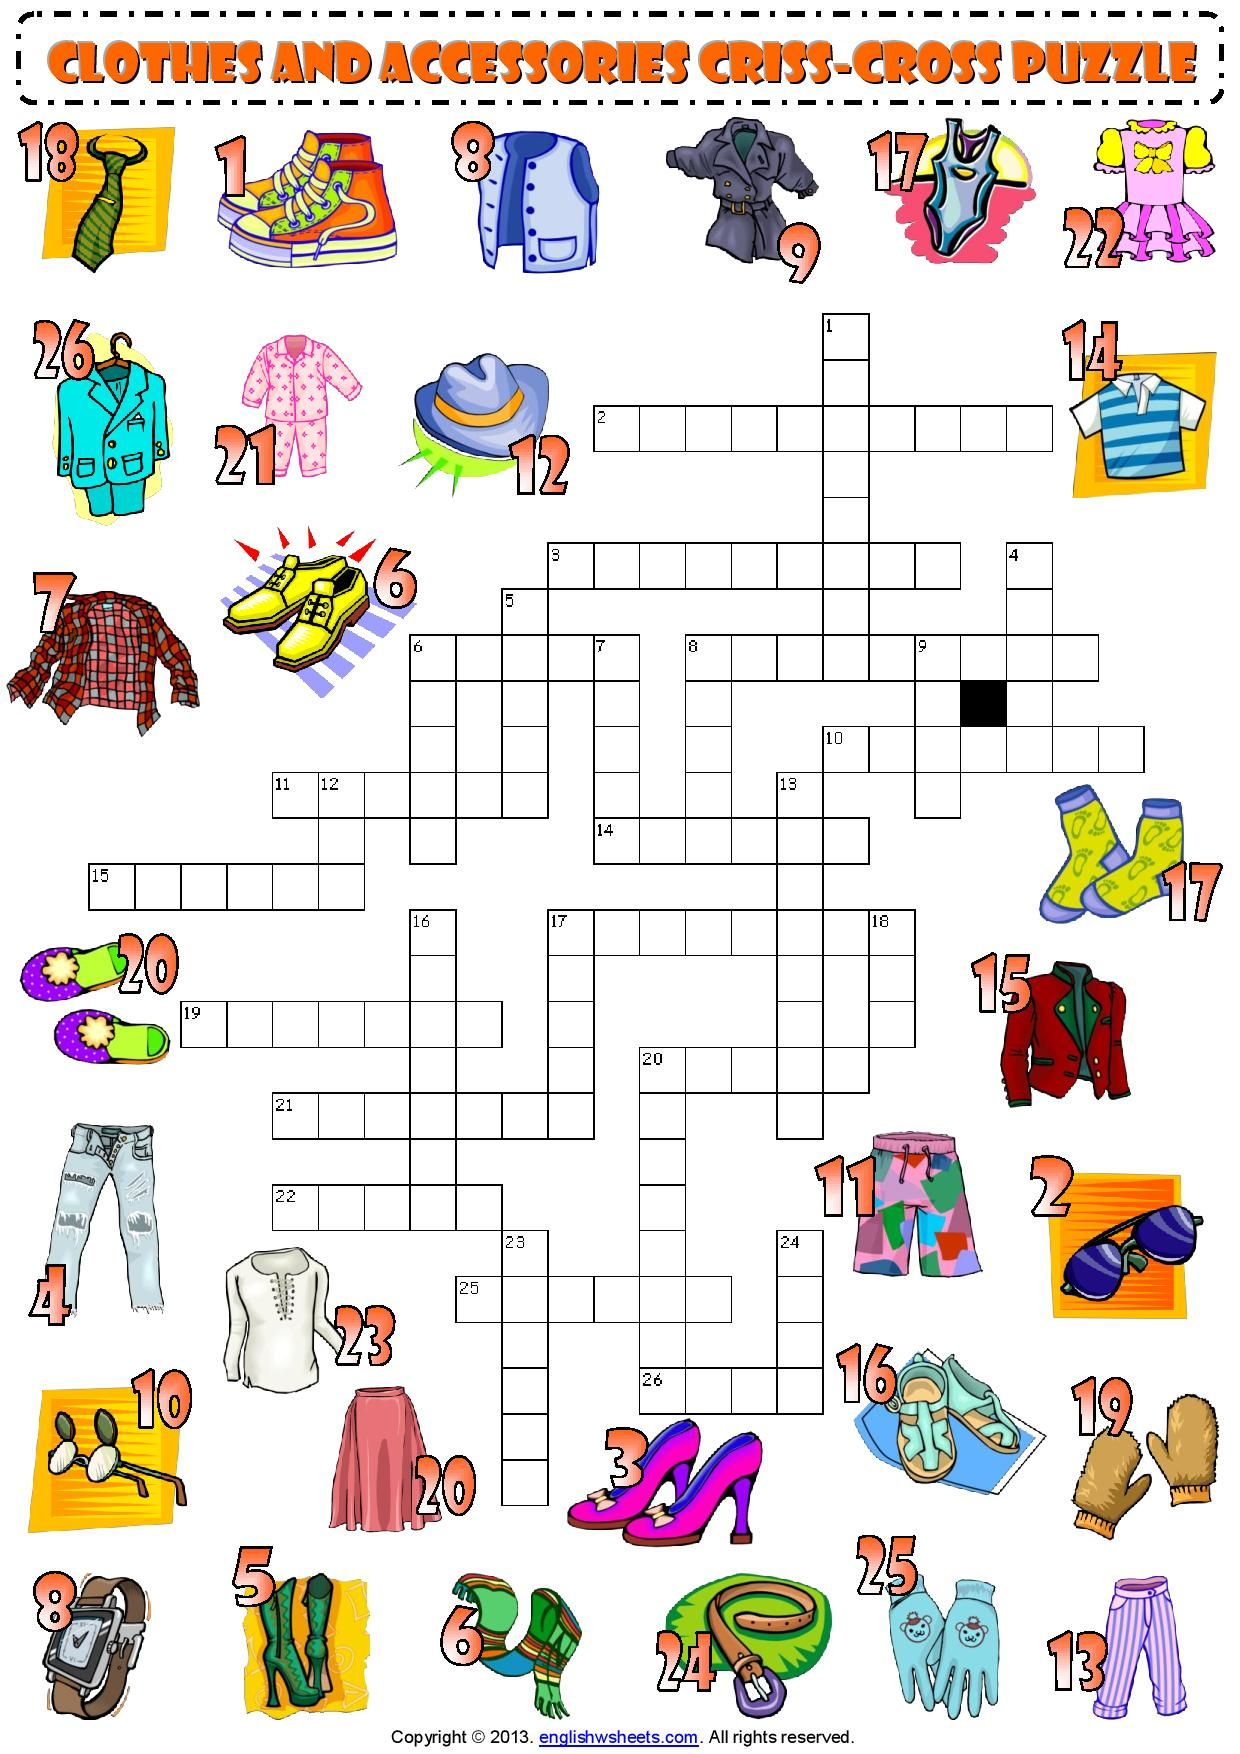 Crossword puzzles to make English learning fun!